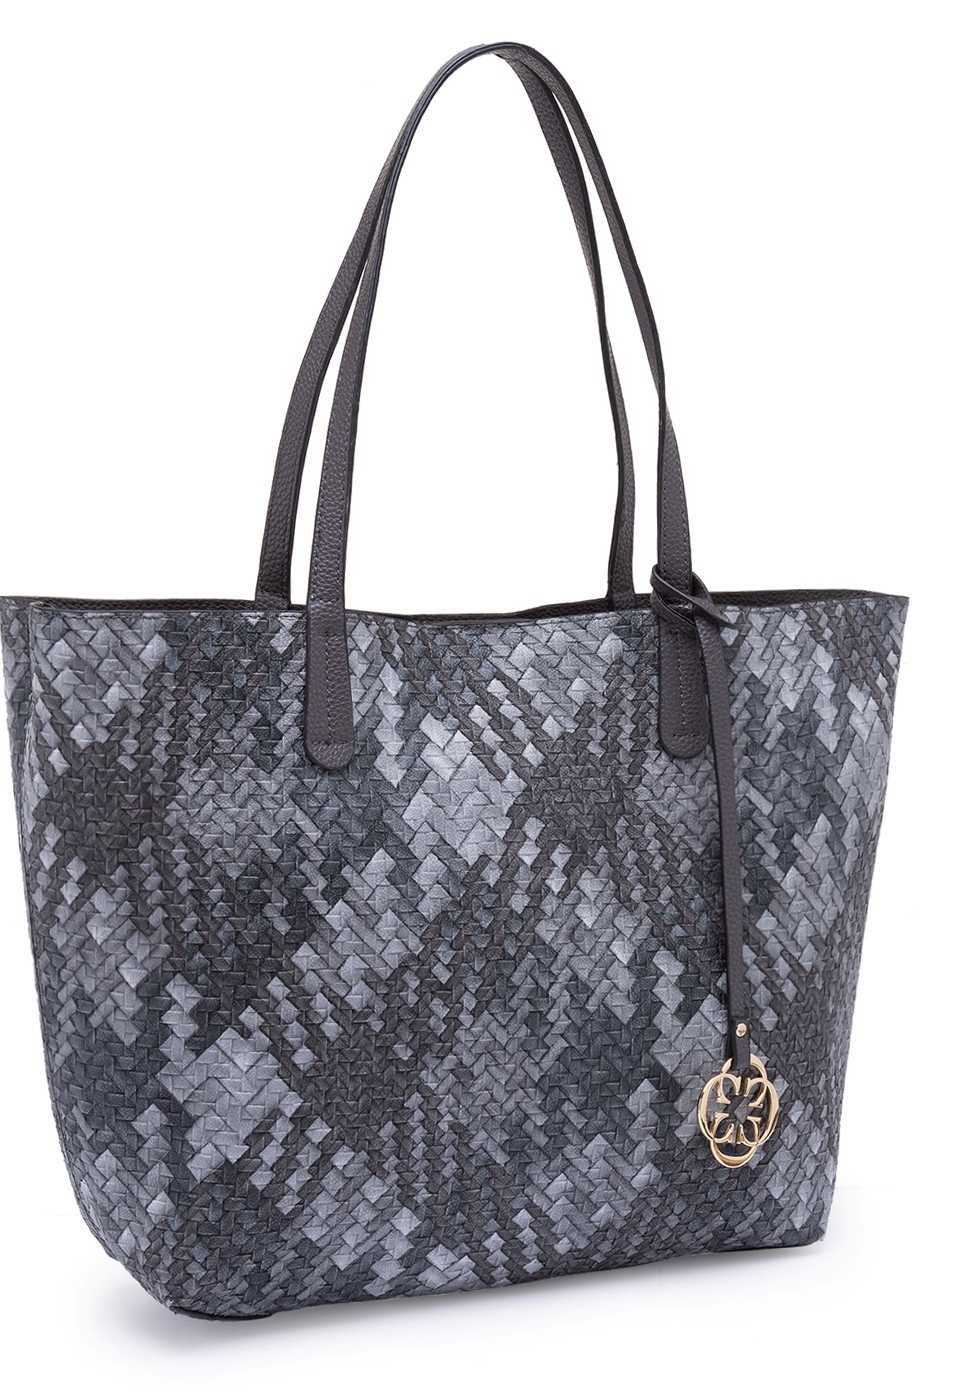 Basilio Embellished Tote Bag